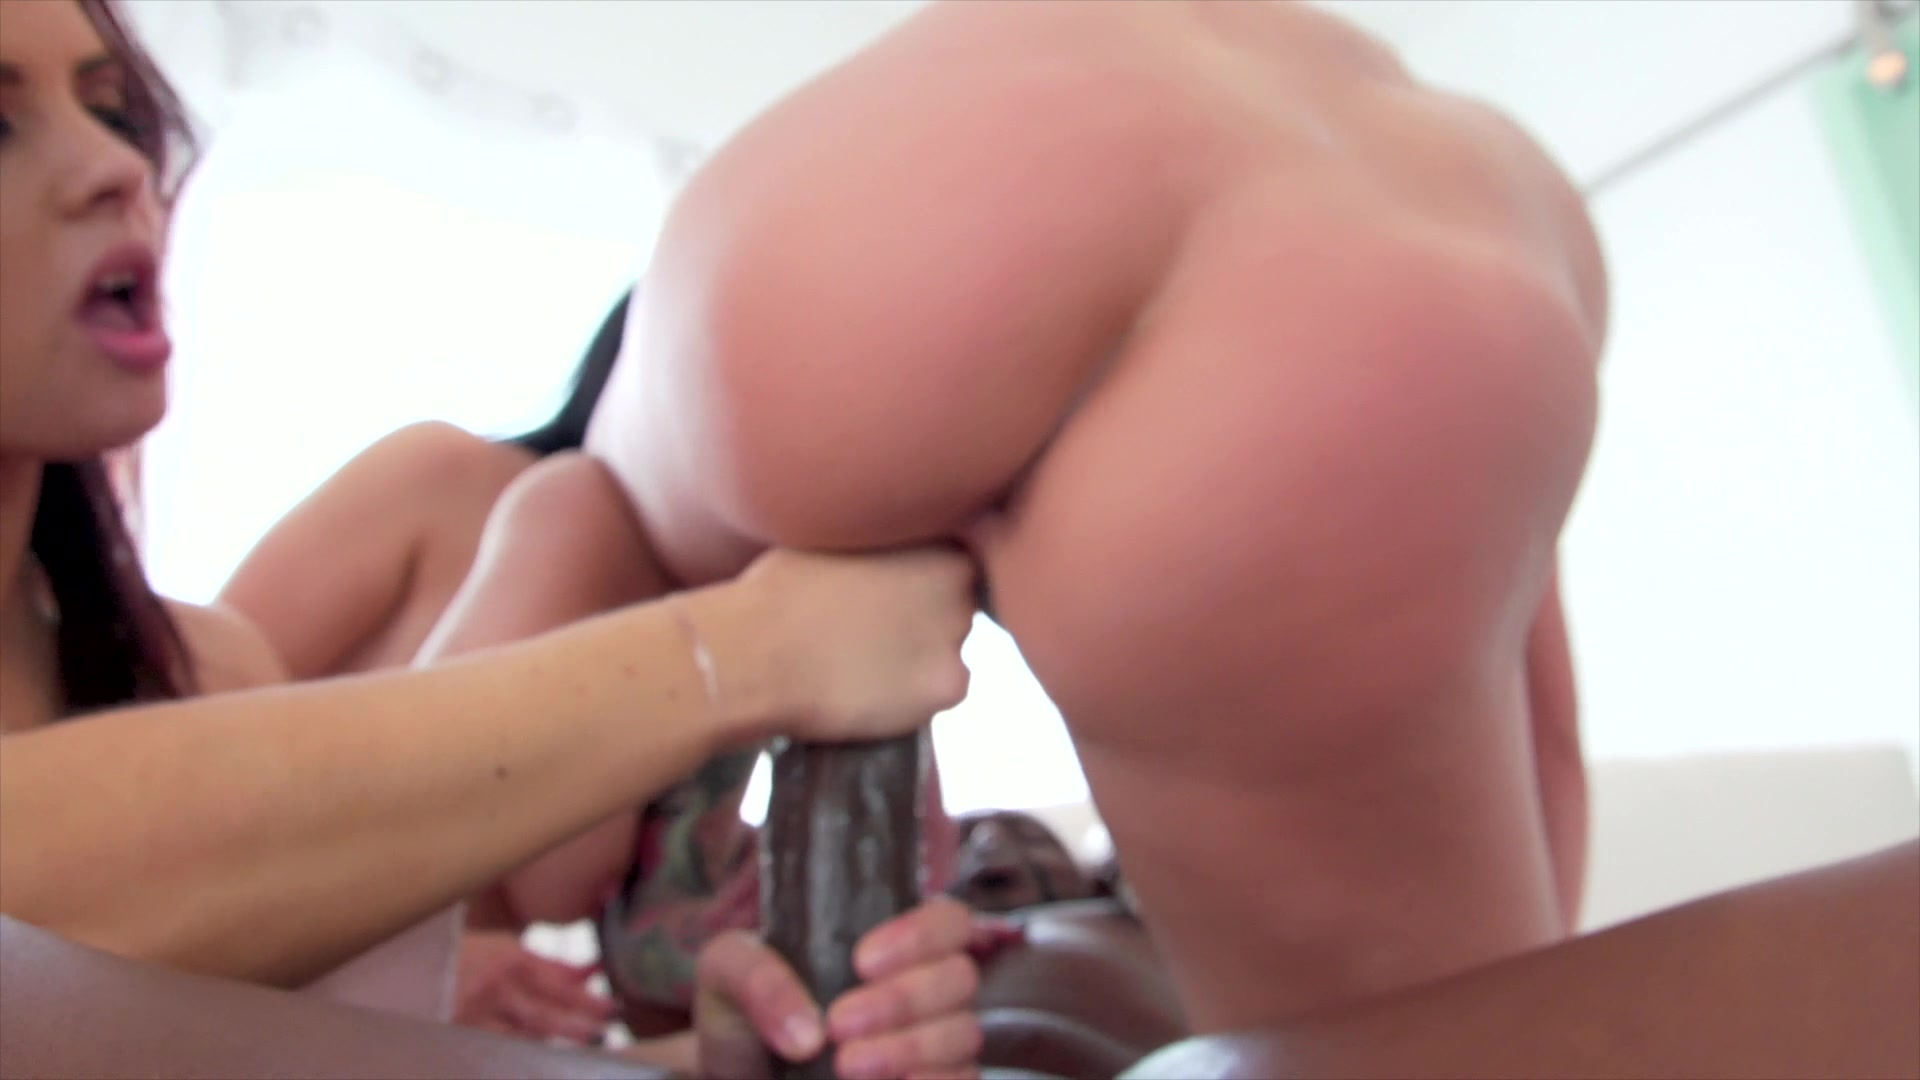 Scene with Casey Calvert, Keisha Grey, Katrina Jade and Goldie Glock - image 11 out of 20